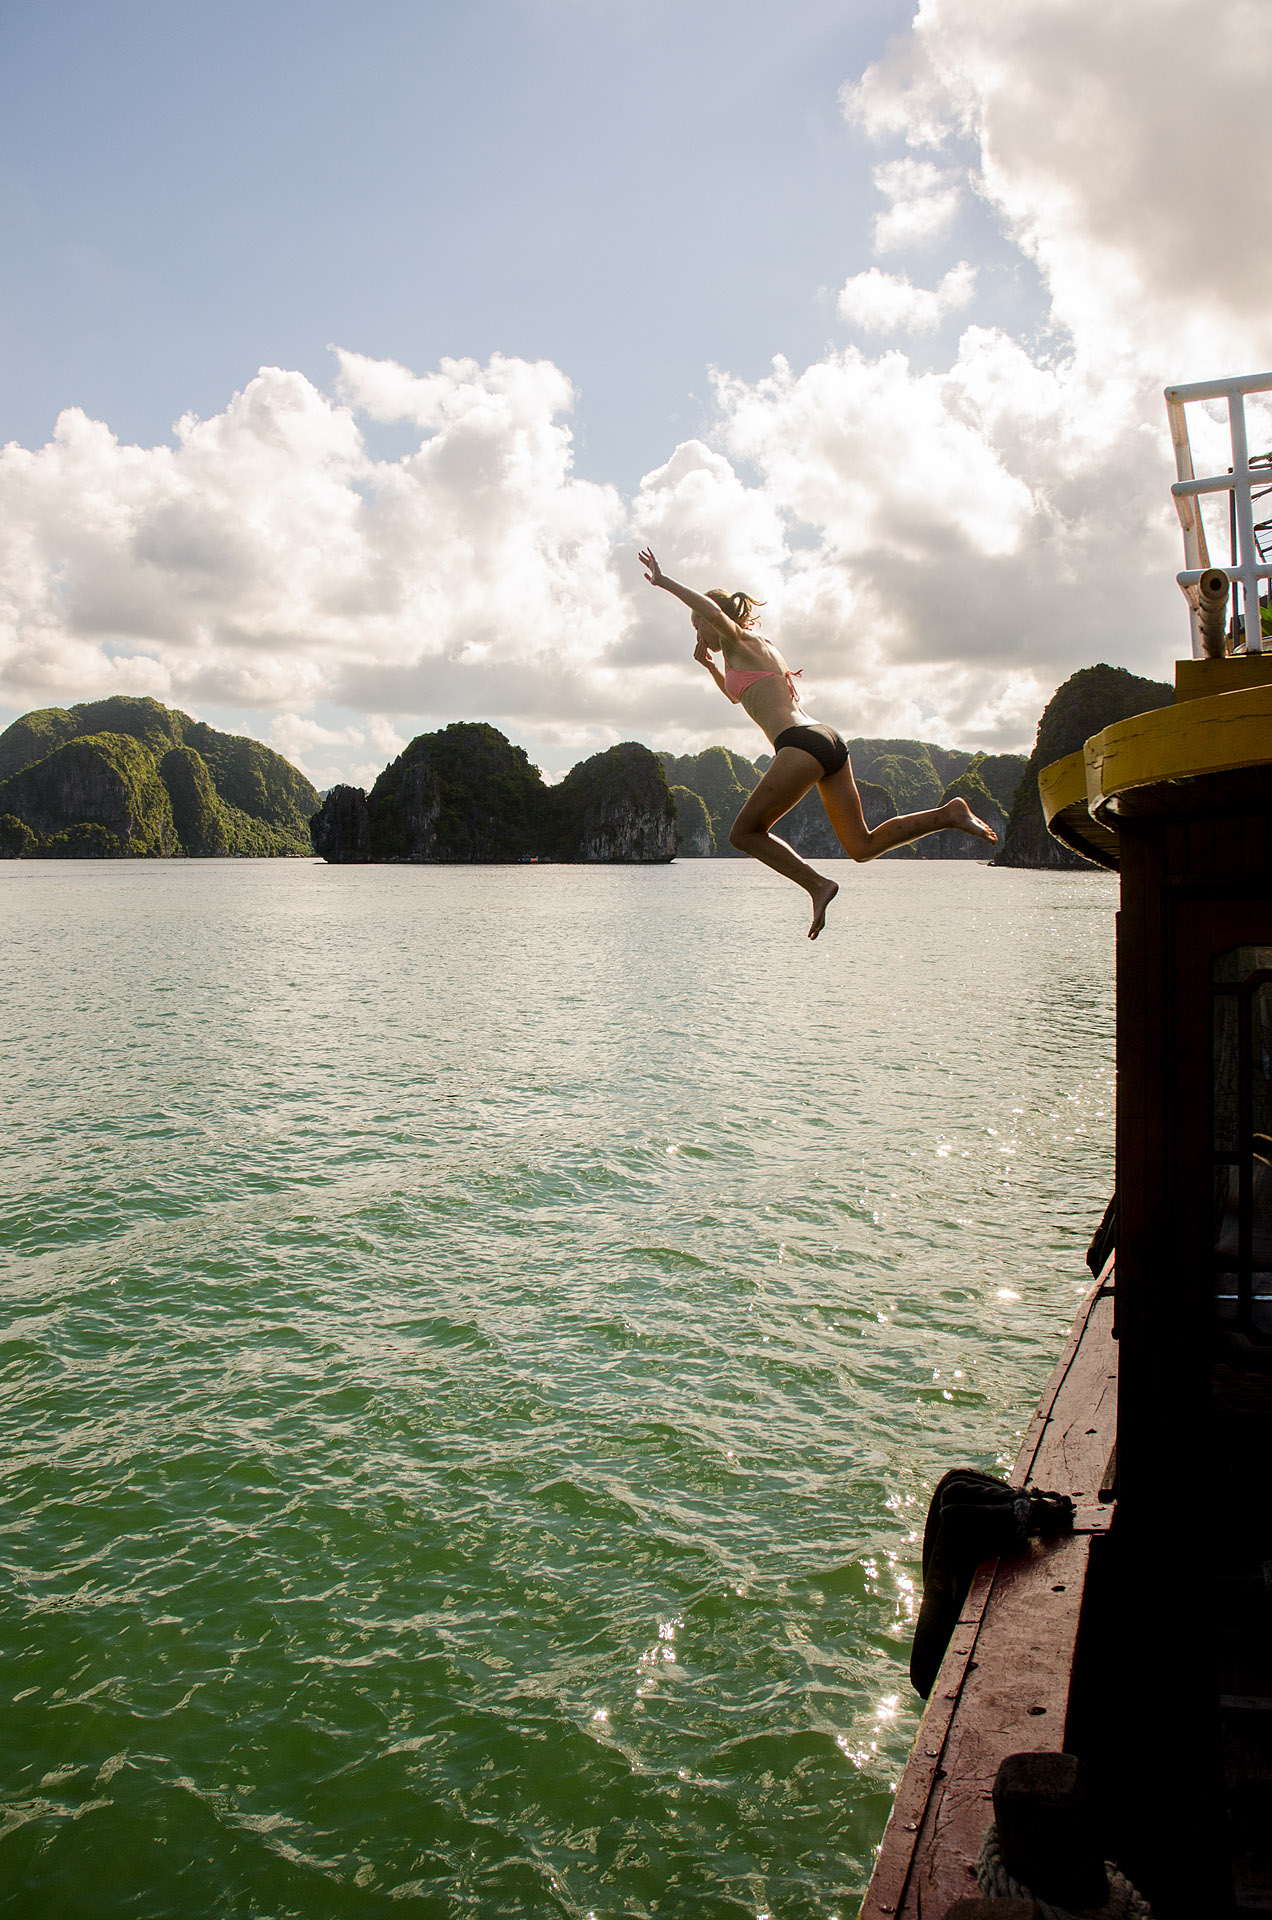 Jumping off the boat in Lan Ha Bay